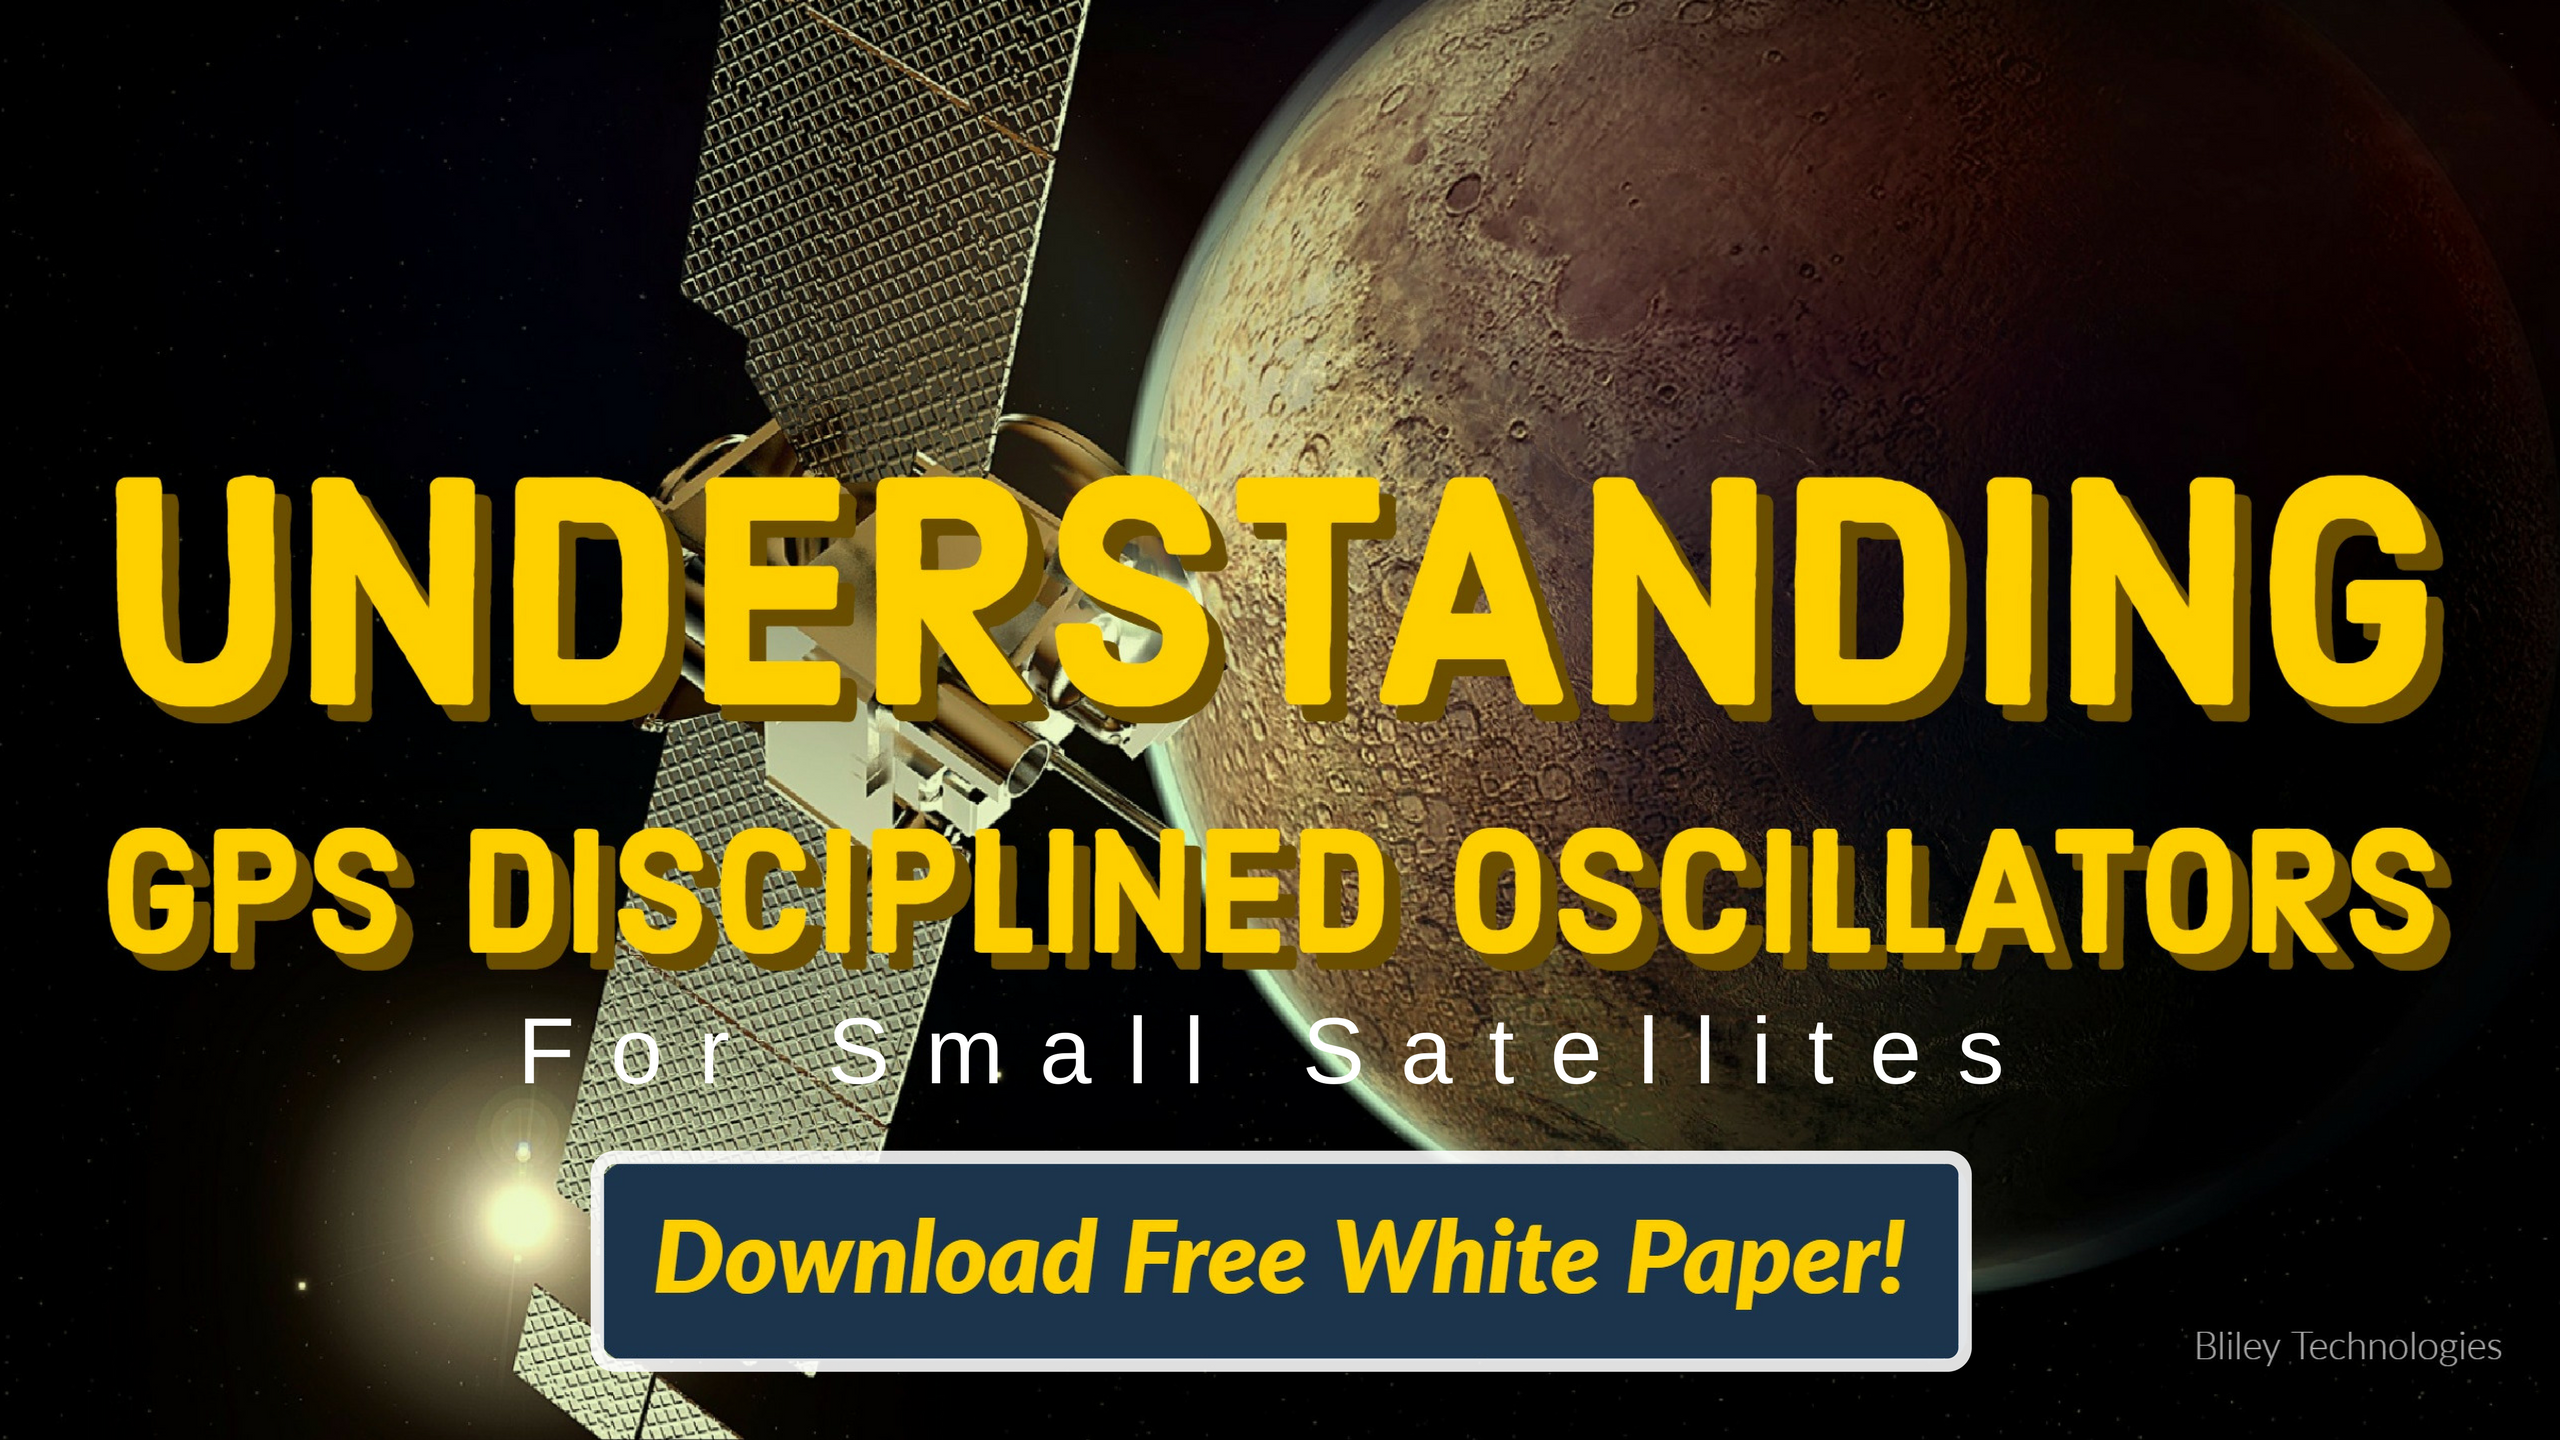 Bliley Technologies GPS Disciplined Oscillator White Paper Download